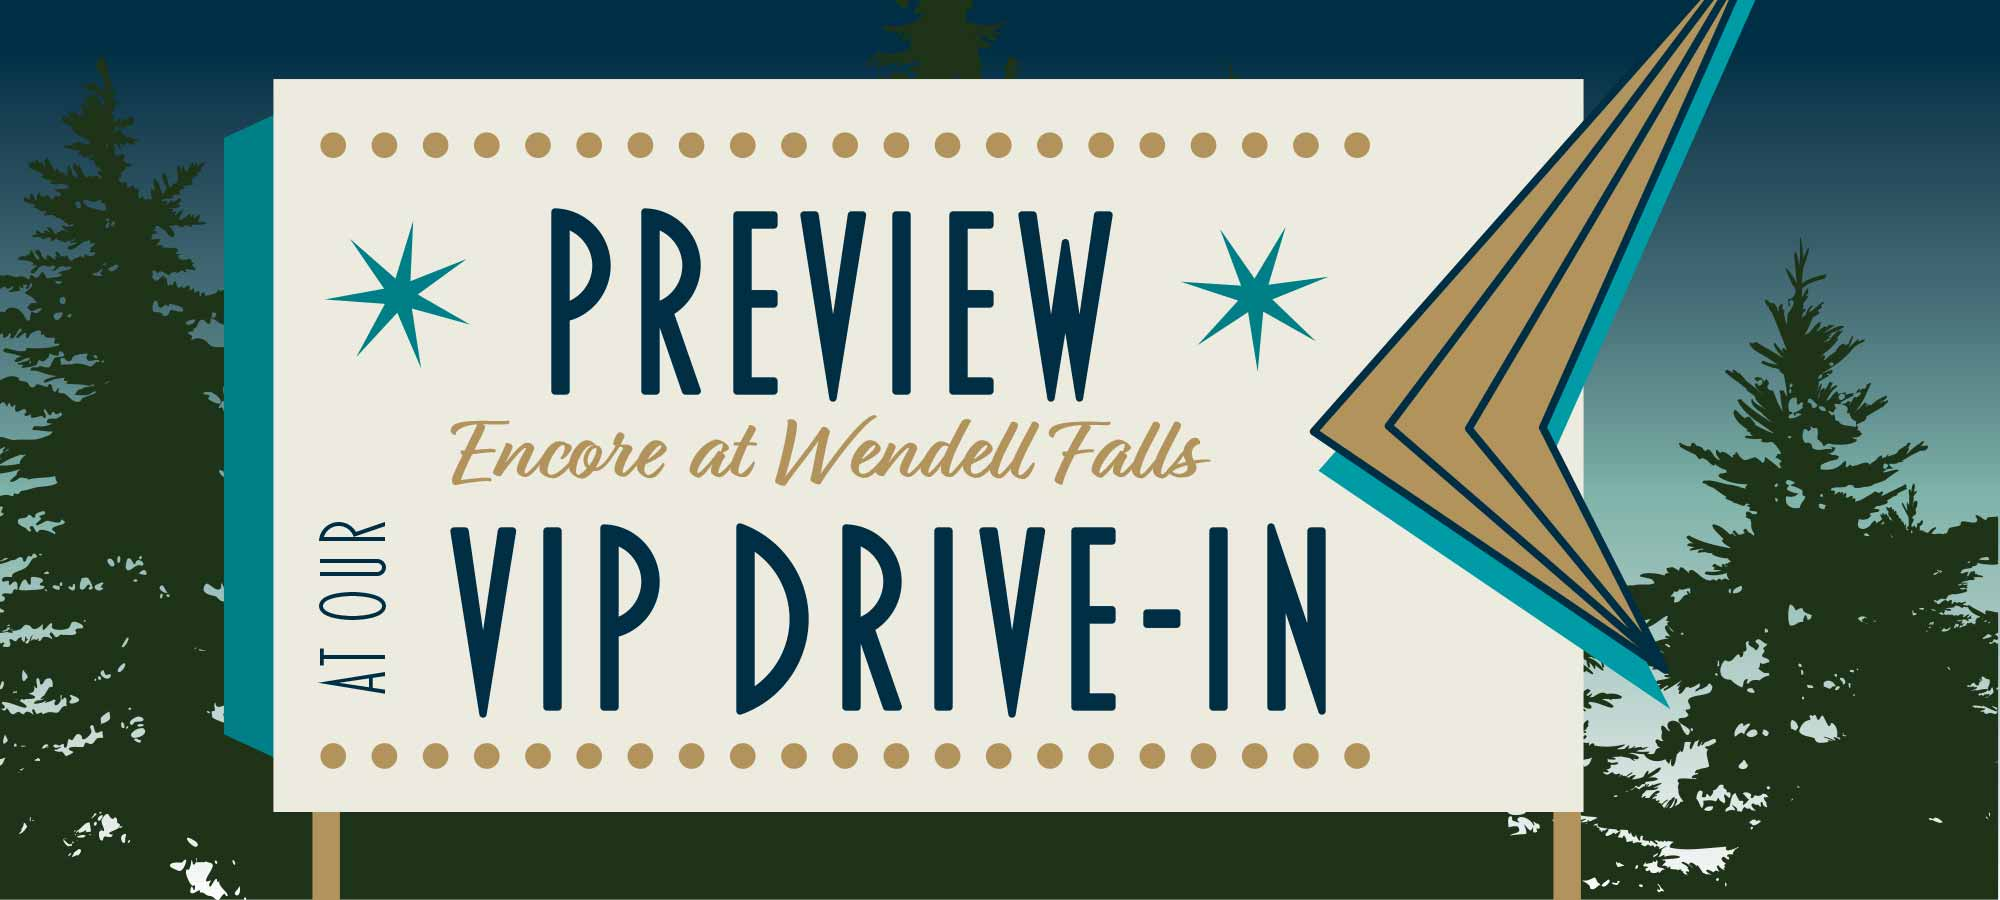 Preview Encore at Wendell Falls at our VIP Drive-in